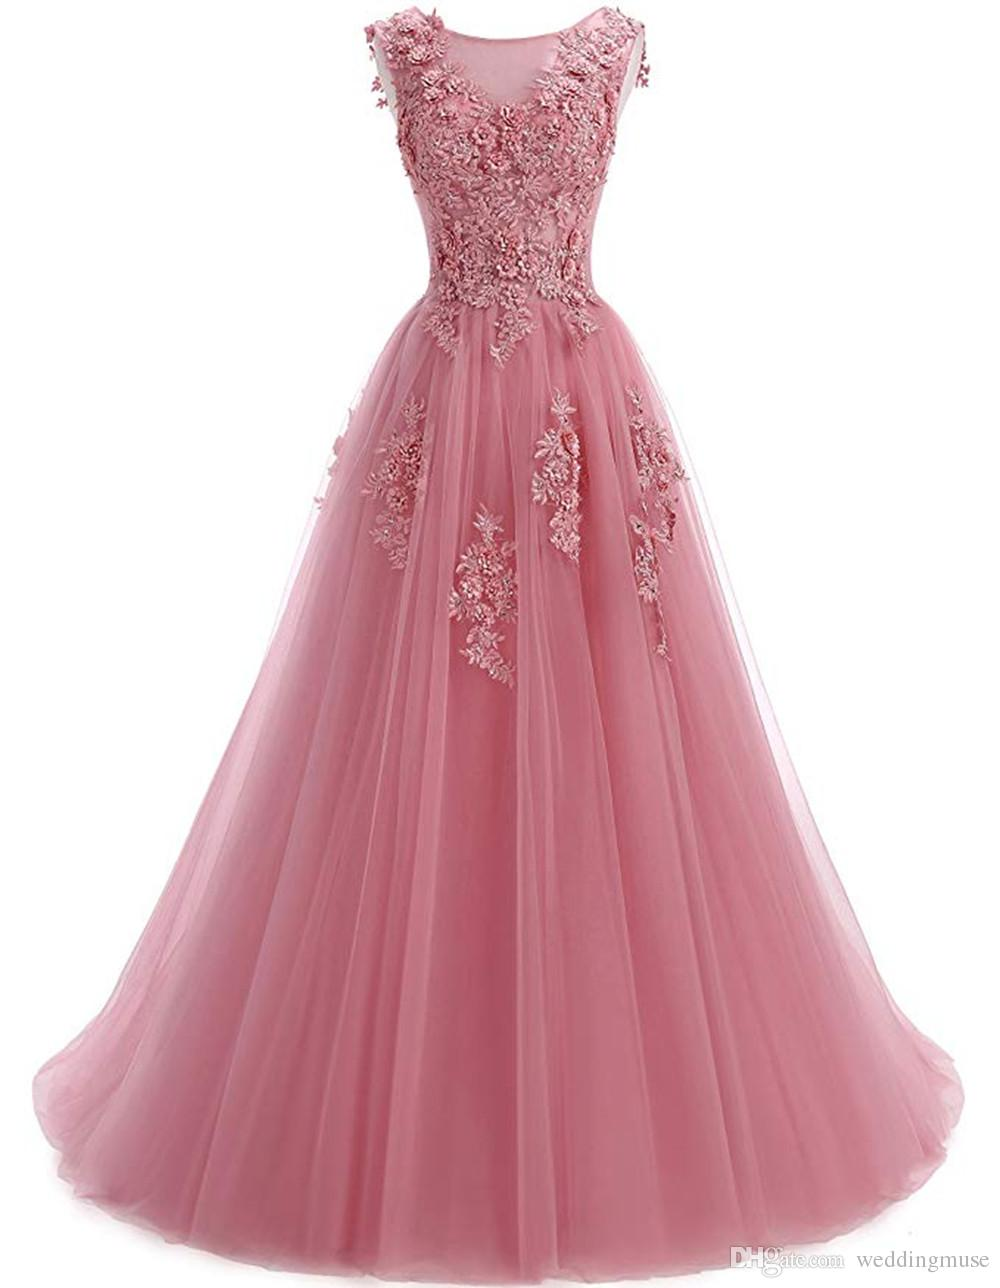 Long Prom Dresses A Line Appliques Lace Sleeveless Blush Pink Evening Party Gown